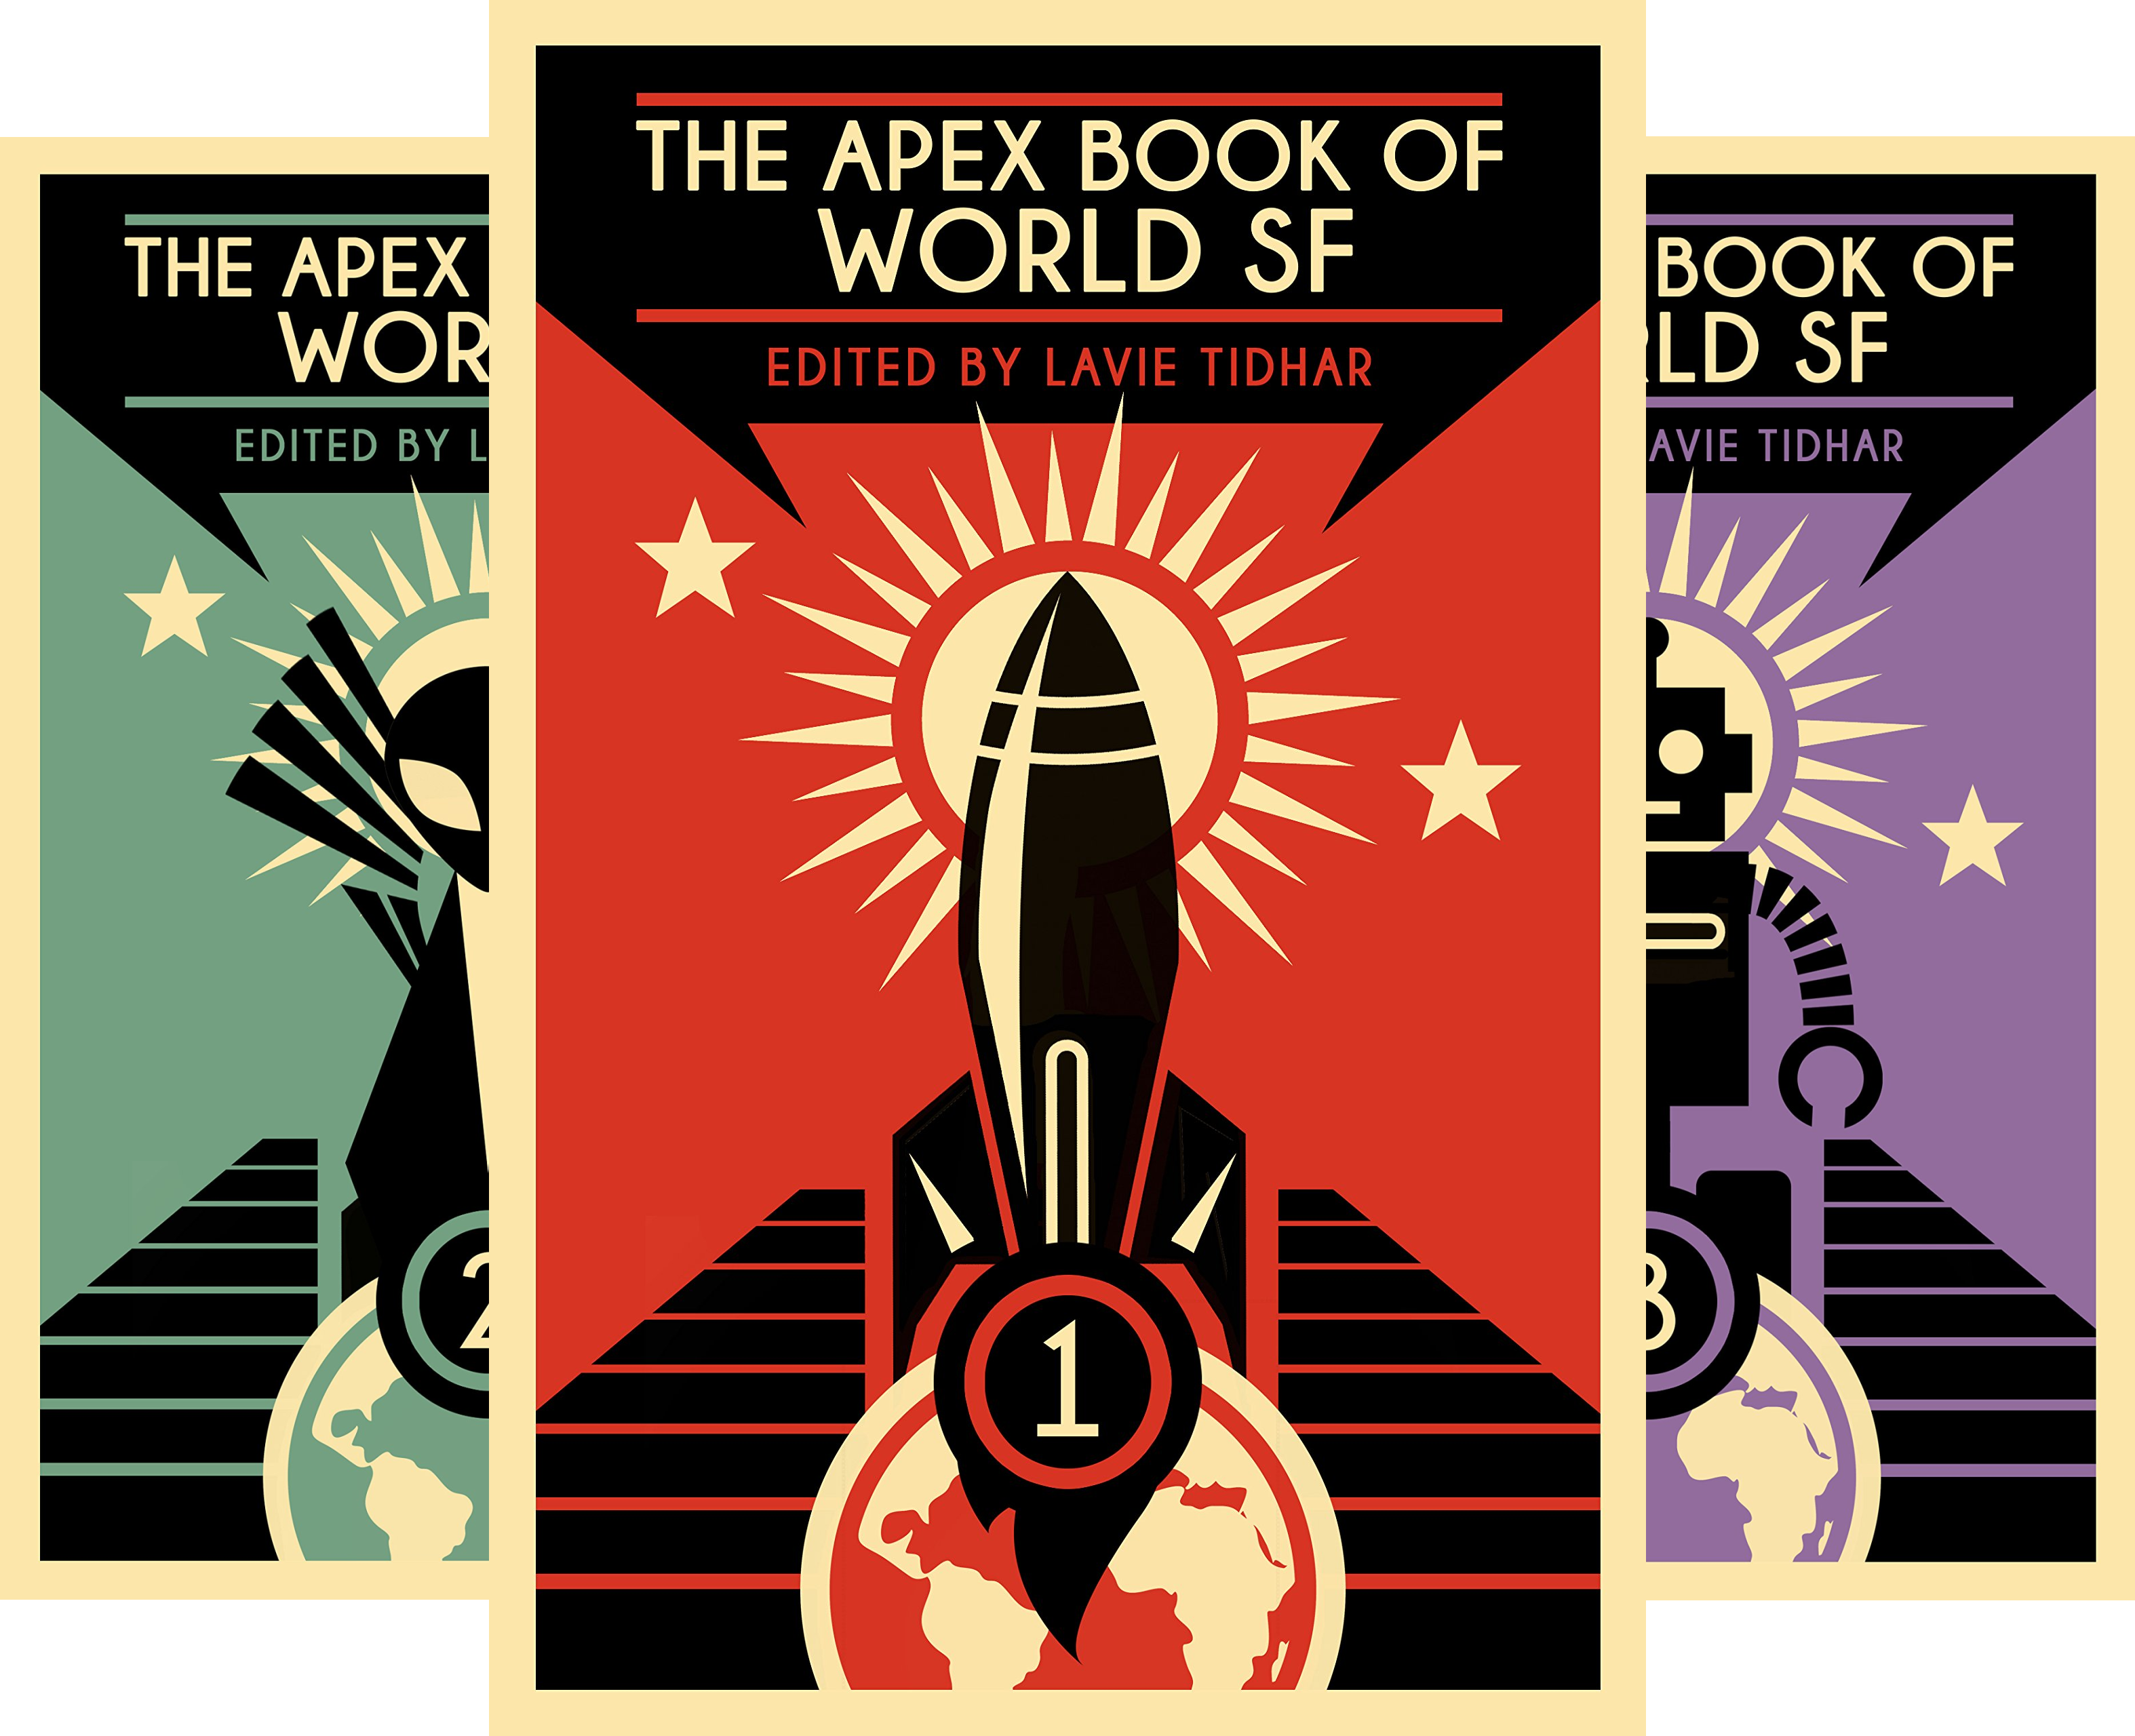 Book cover from Apex World of Speculative Fiction (4 Book Series) by S.P. Somtow